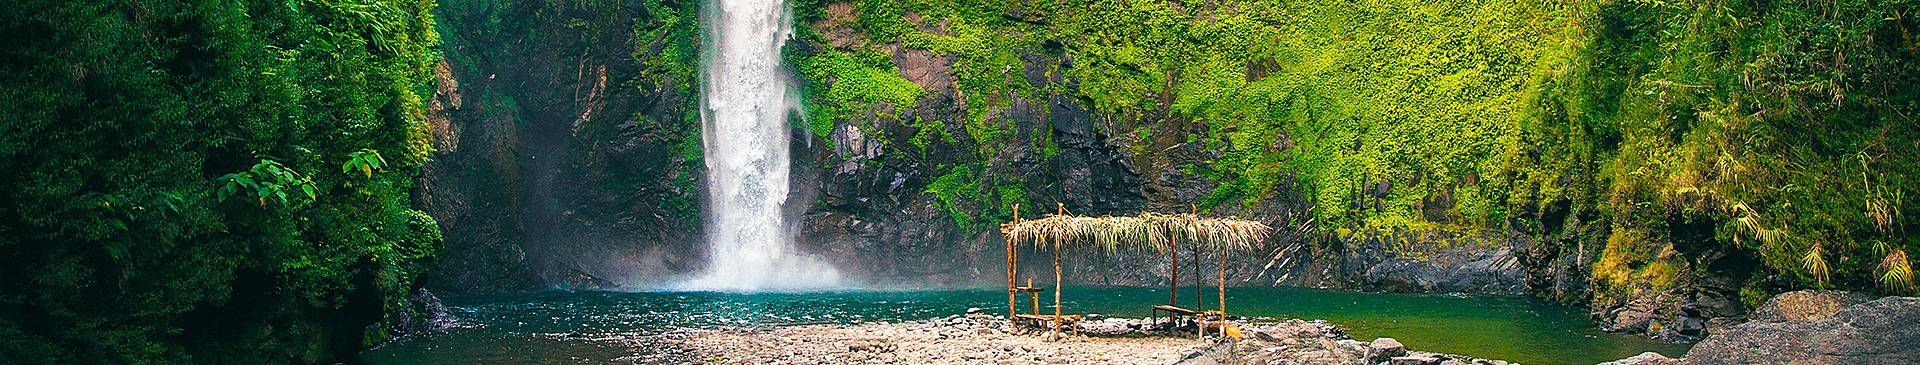 Wellness retreats in The Philippines